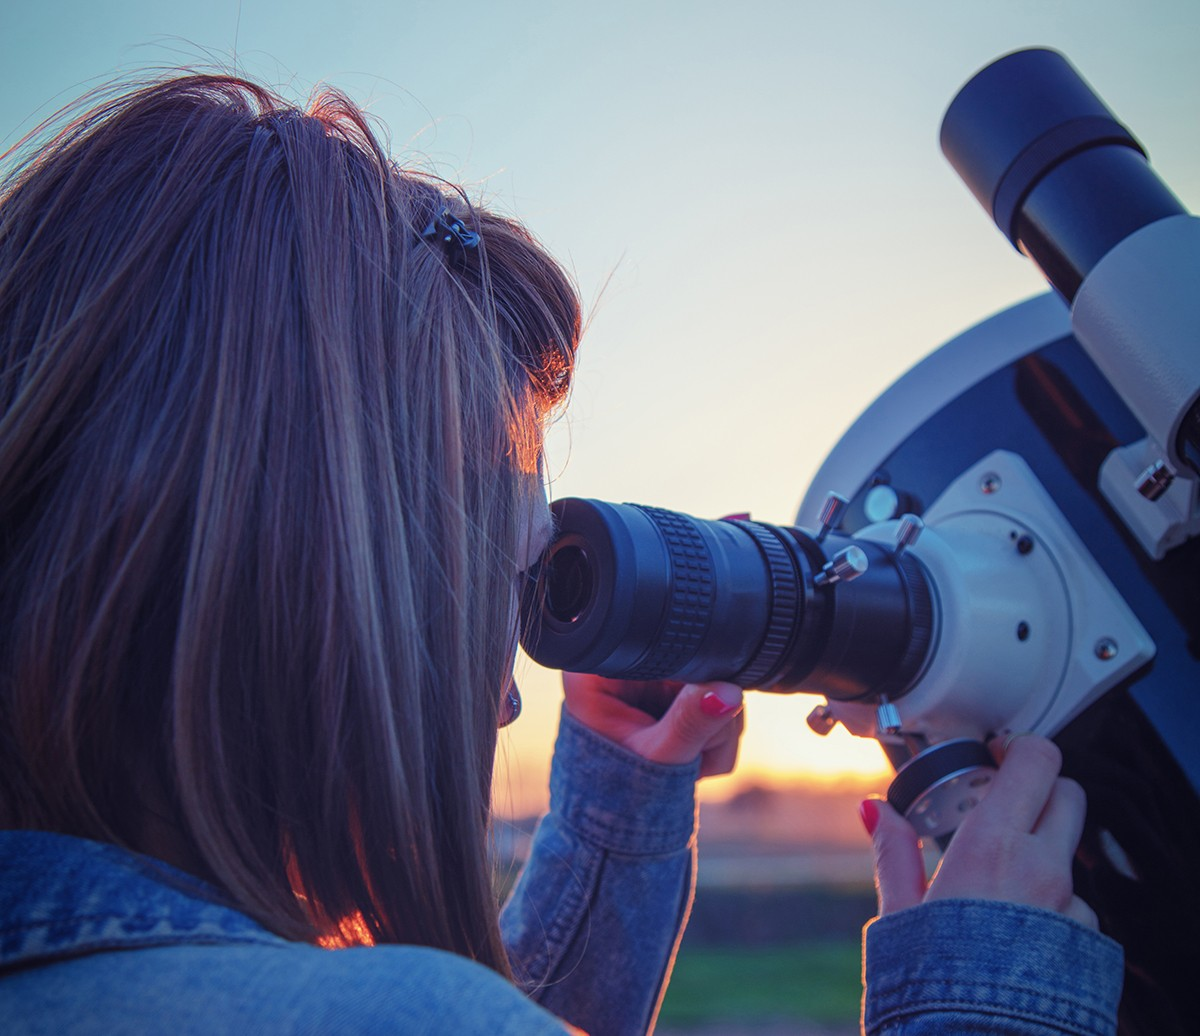 > Practise setting up your scope while it's still light, and always try to observe across a clear horizon. Credit: m-gucci/iStock / Getty images